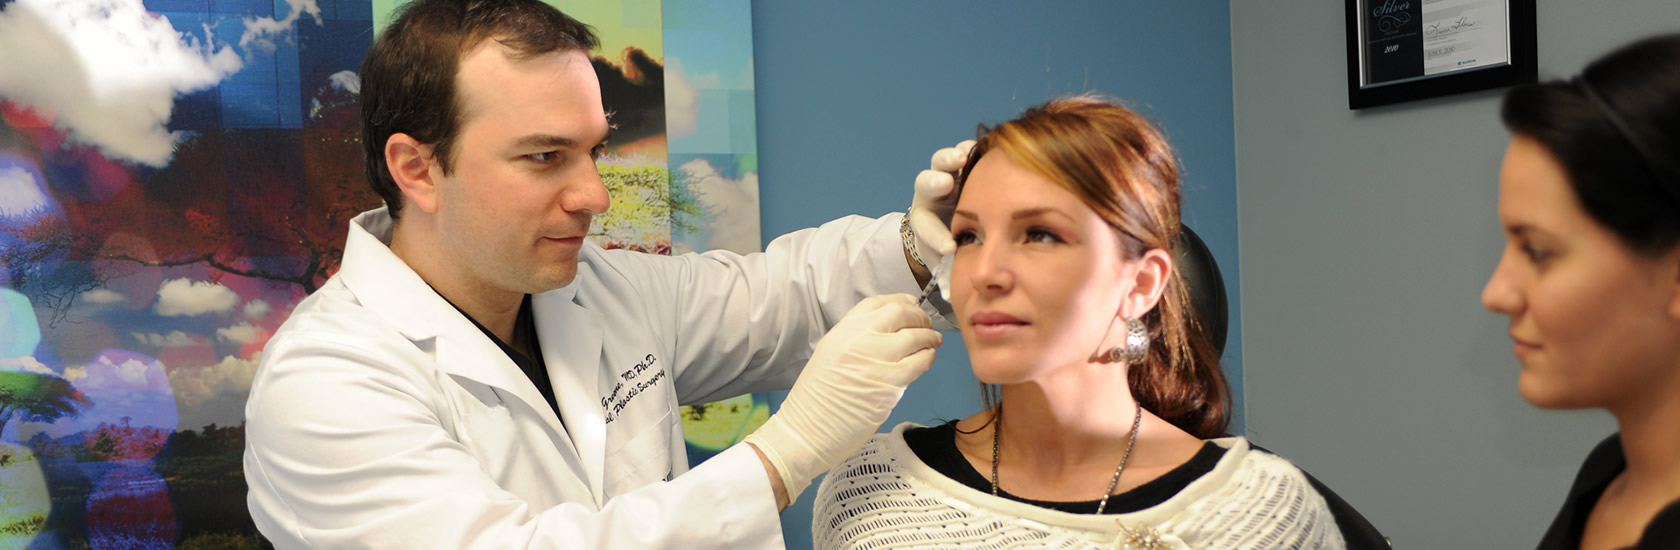 Dr. Ryan Greene facial Filler Expert